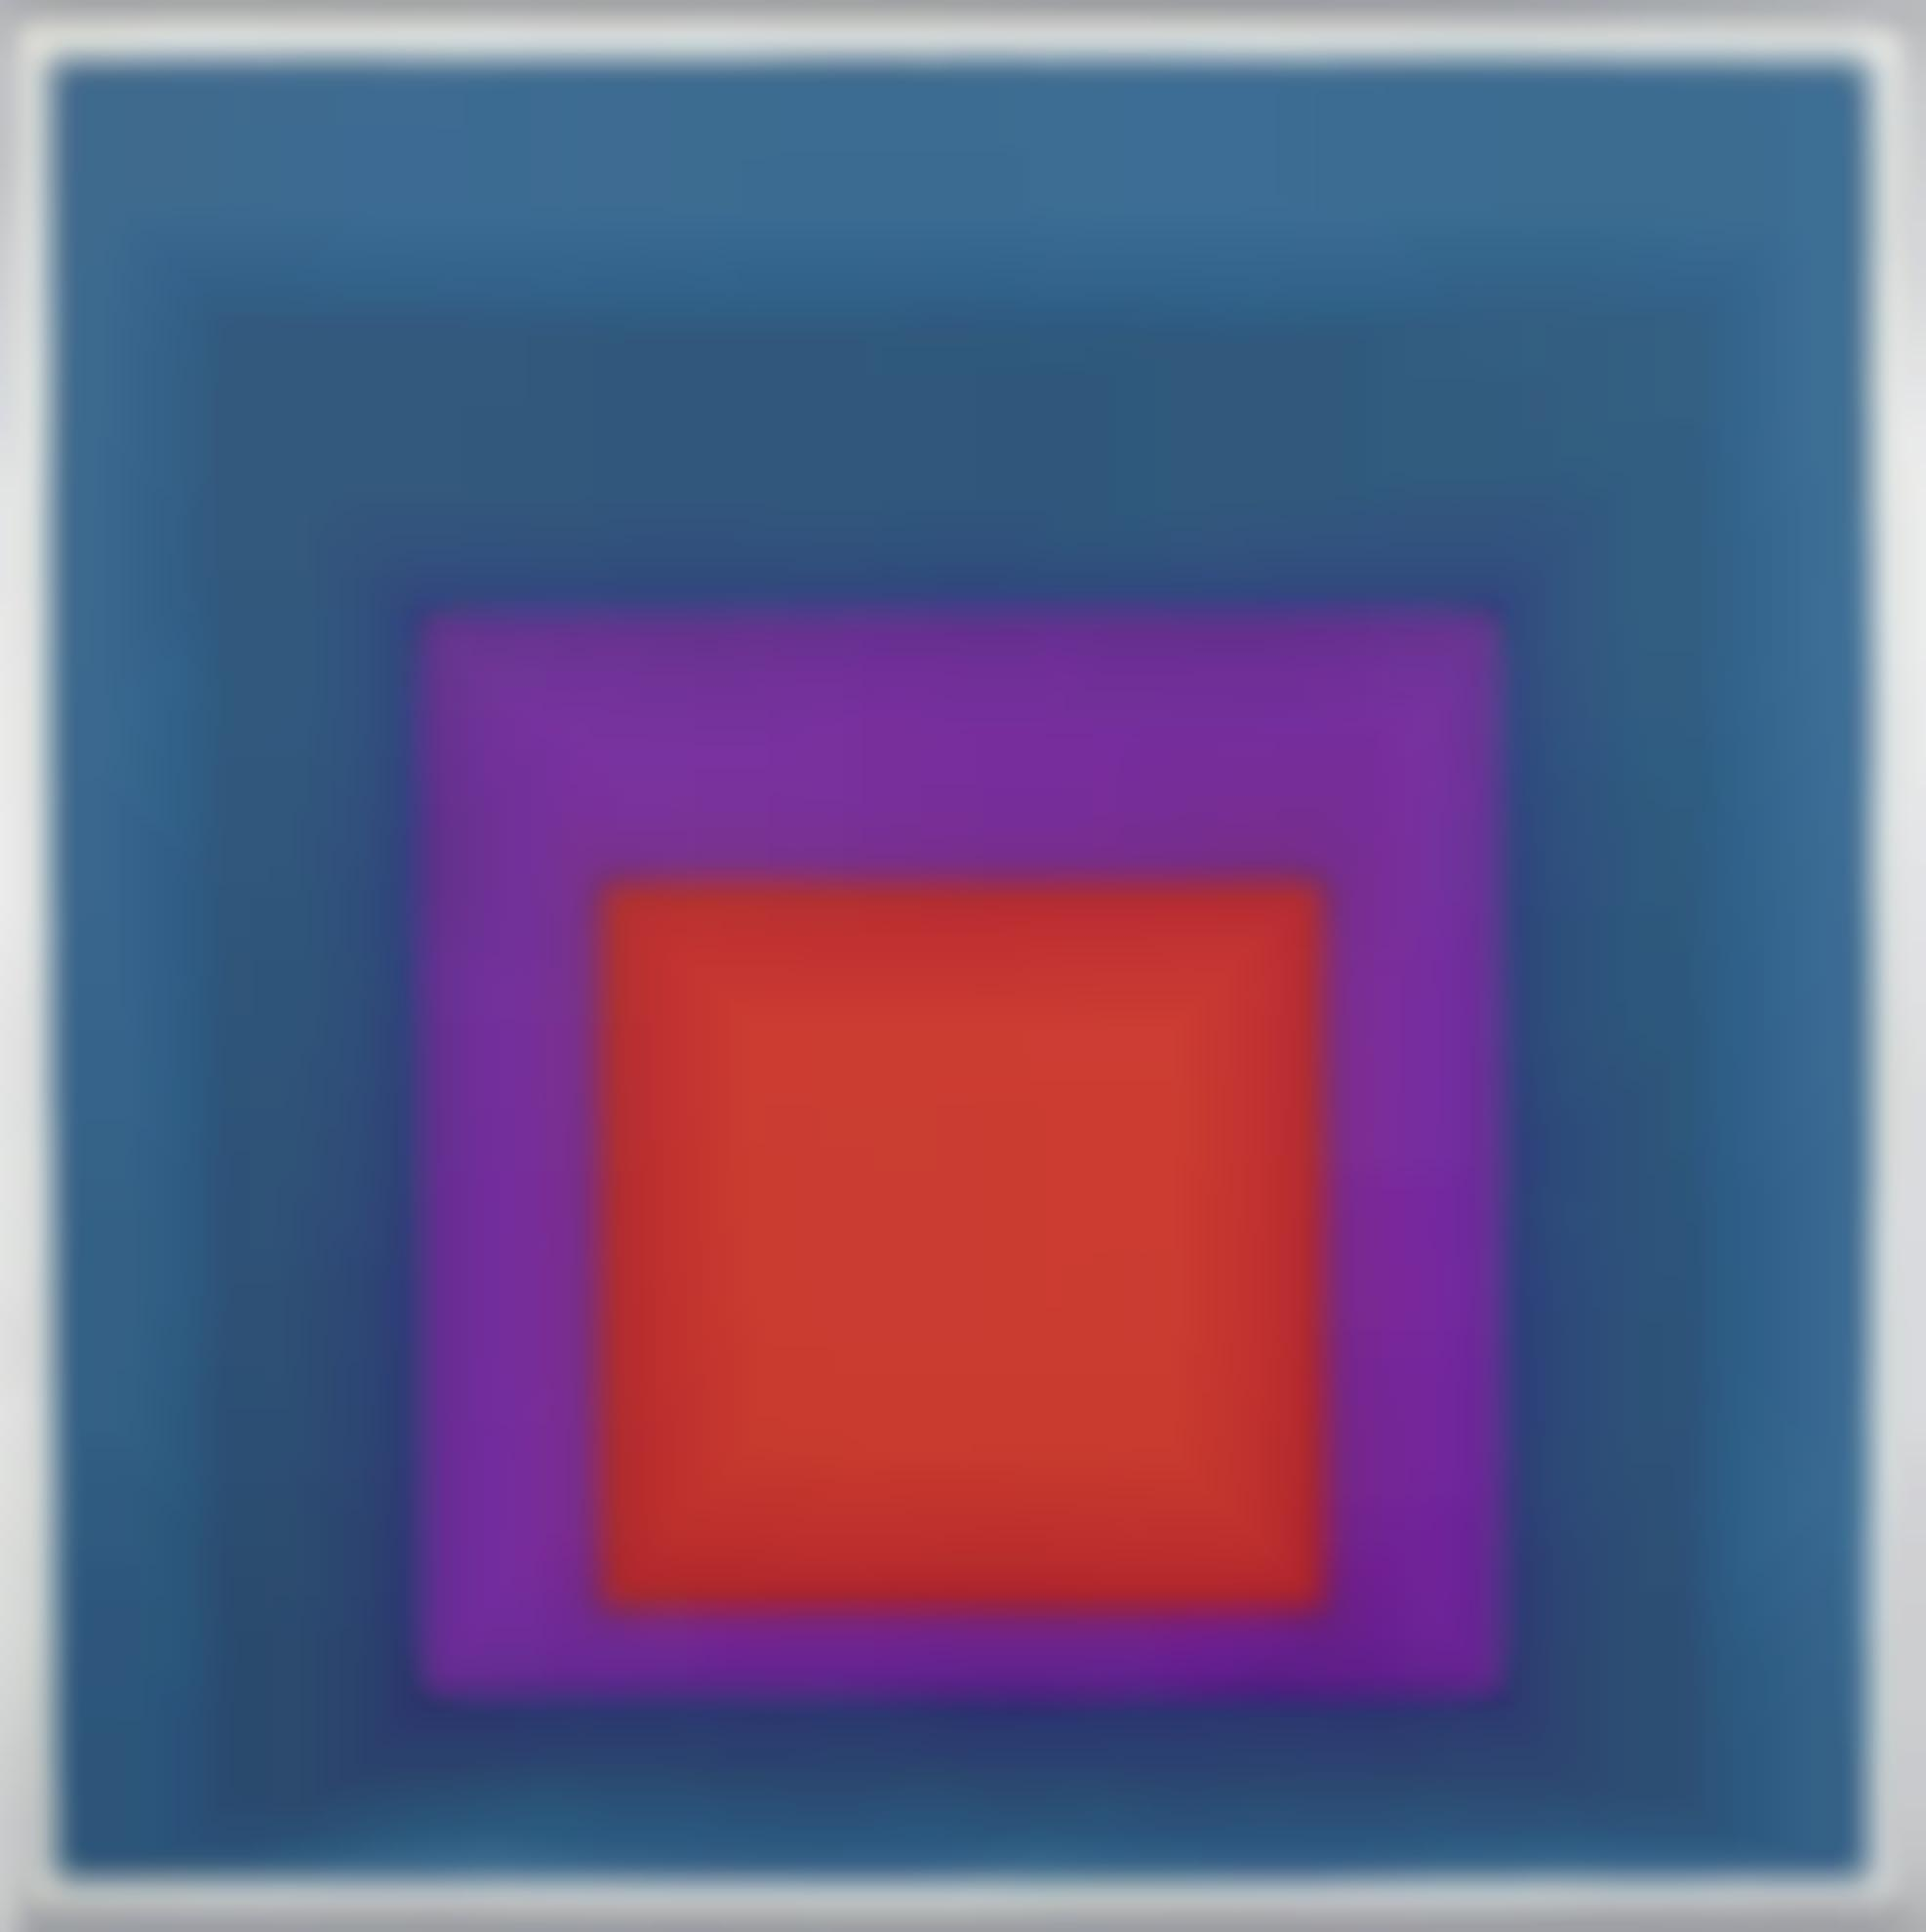 Josef Albers-Homage To The Square: Temperate-1957